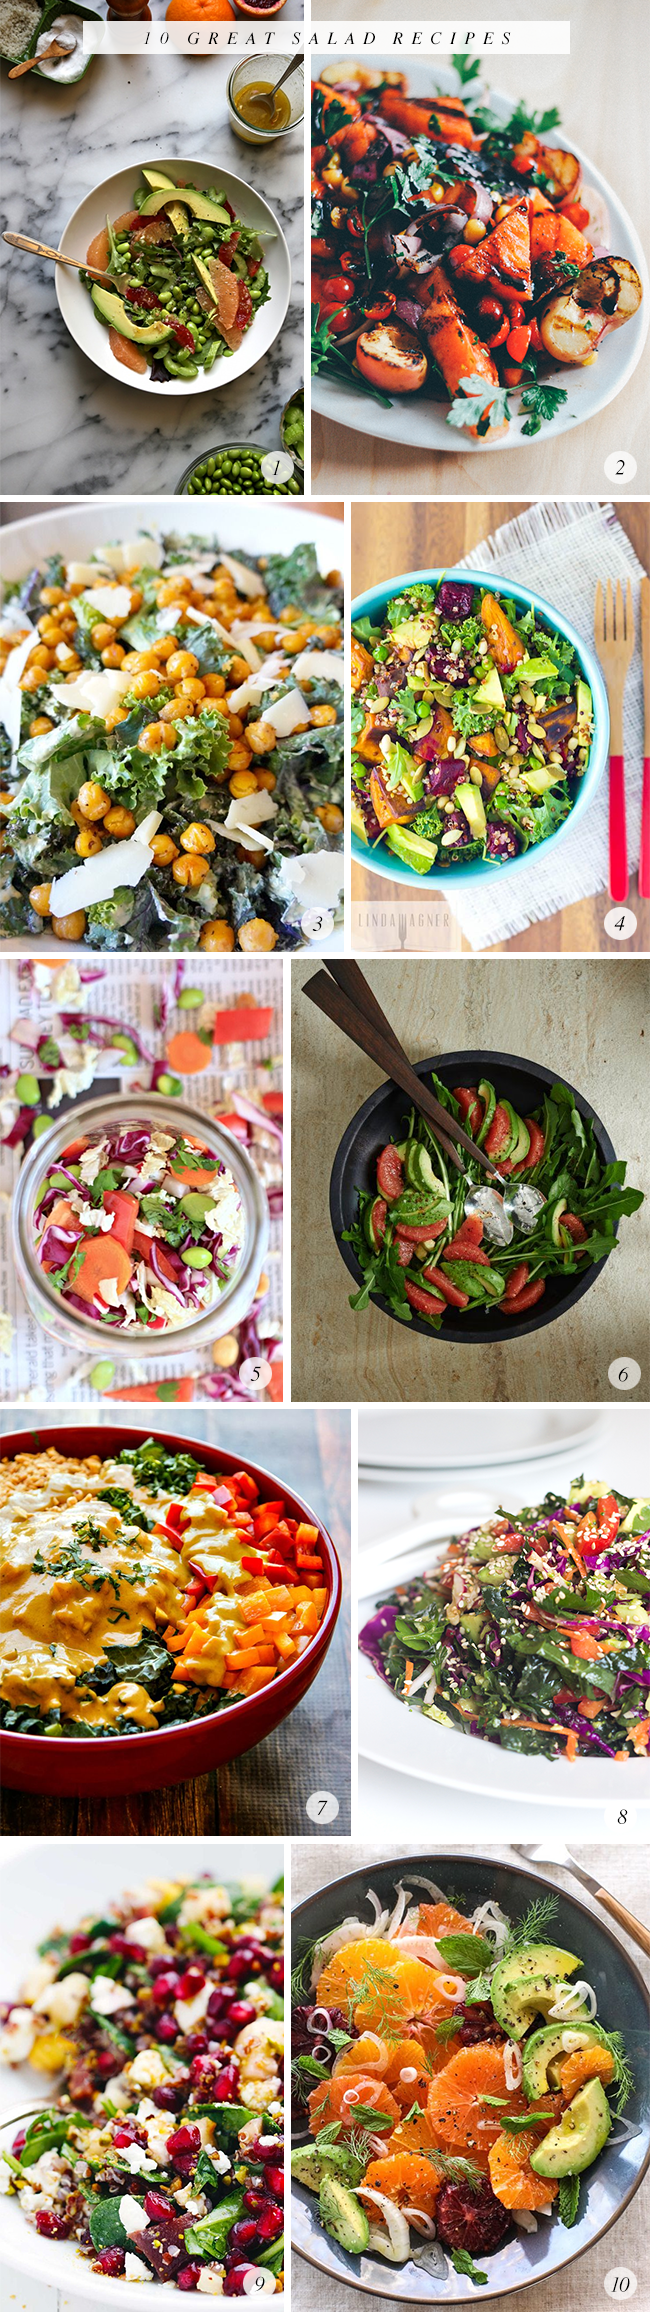 10 Great Salad Recipes // Bubby and Bean